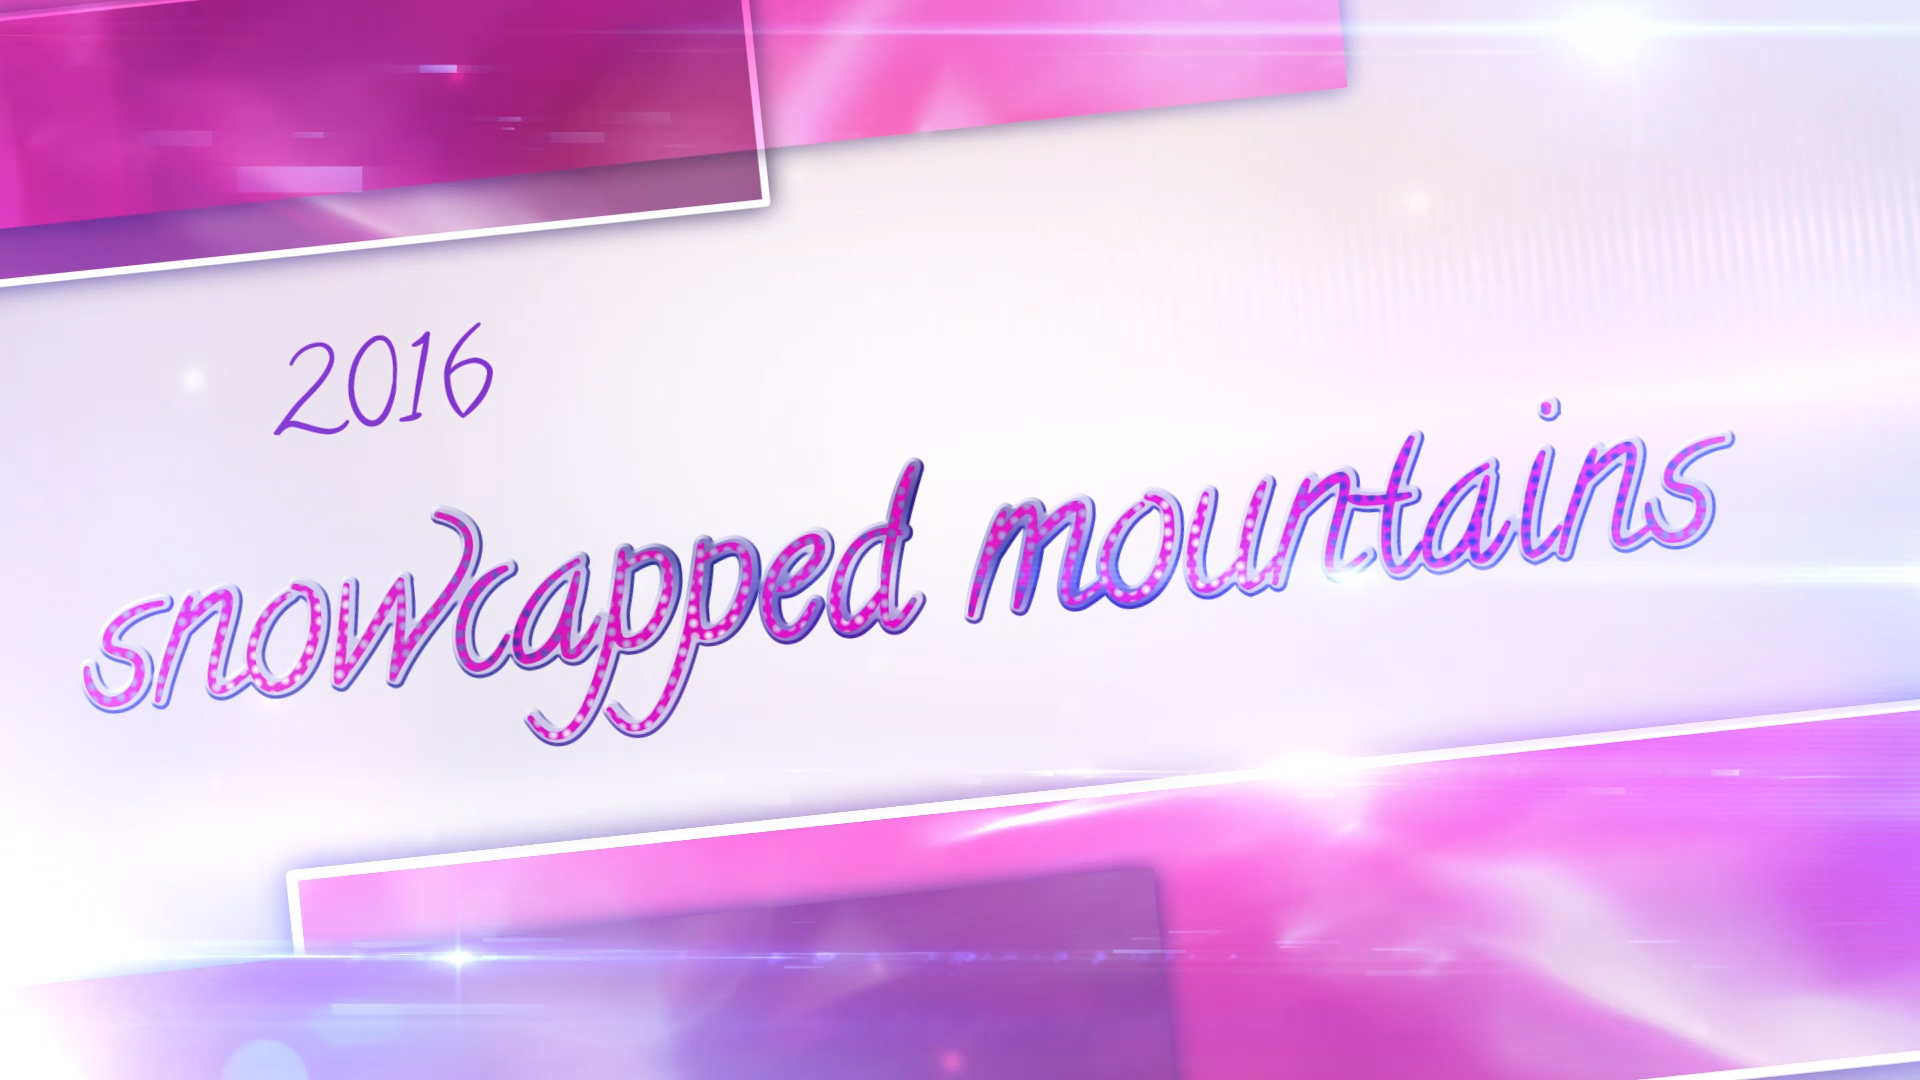 Snowcapped Mountains Videopreview